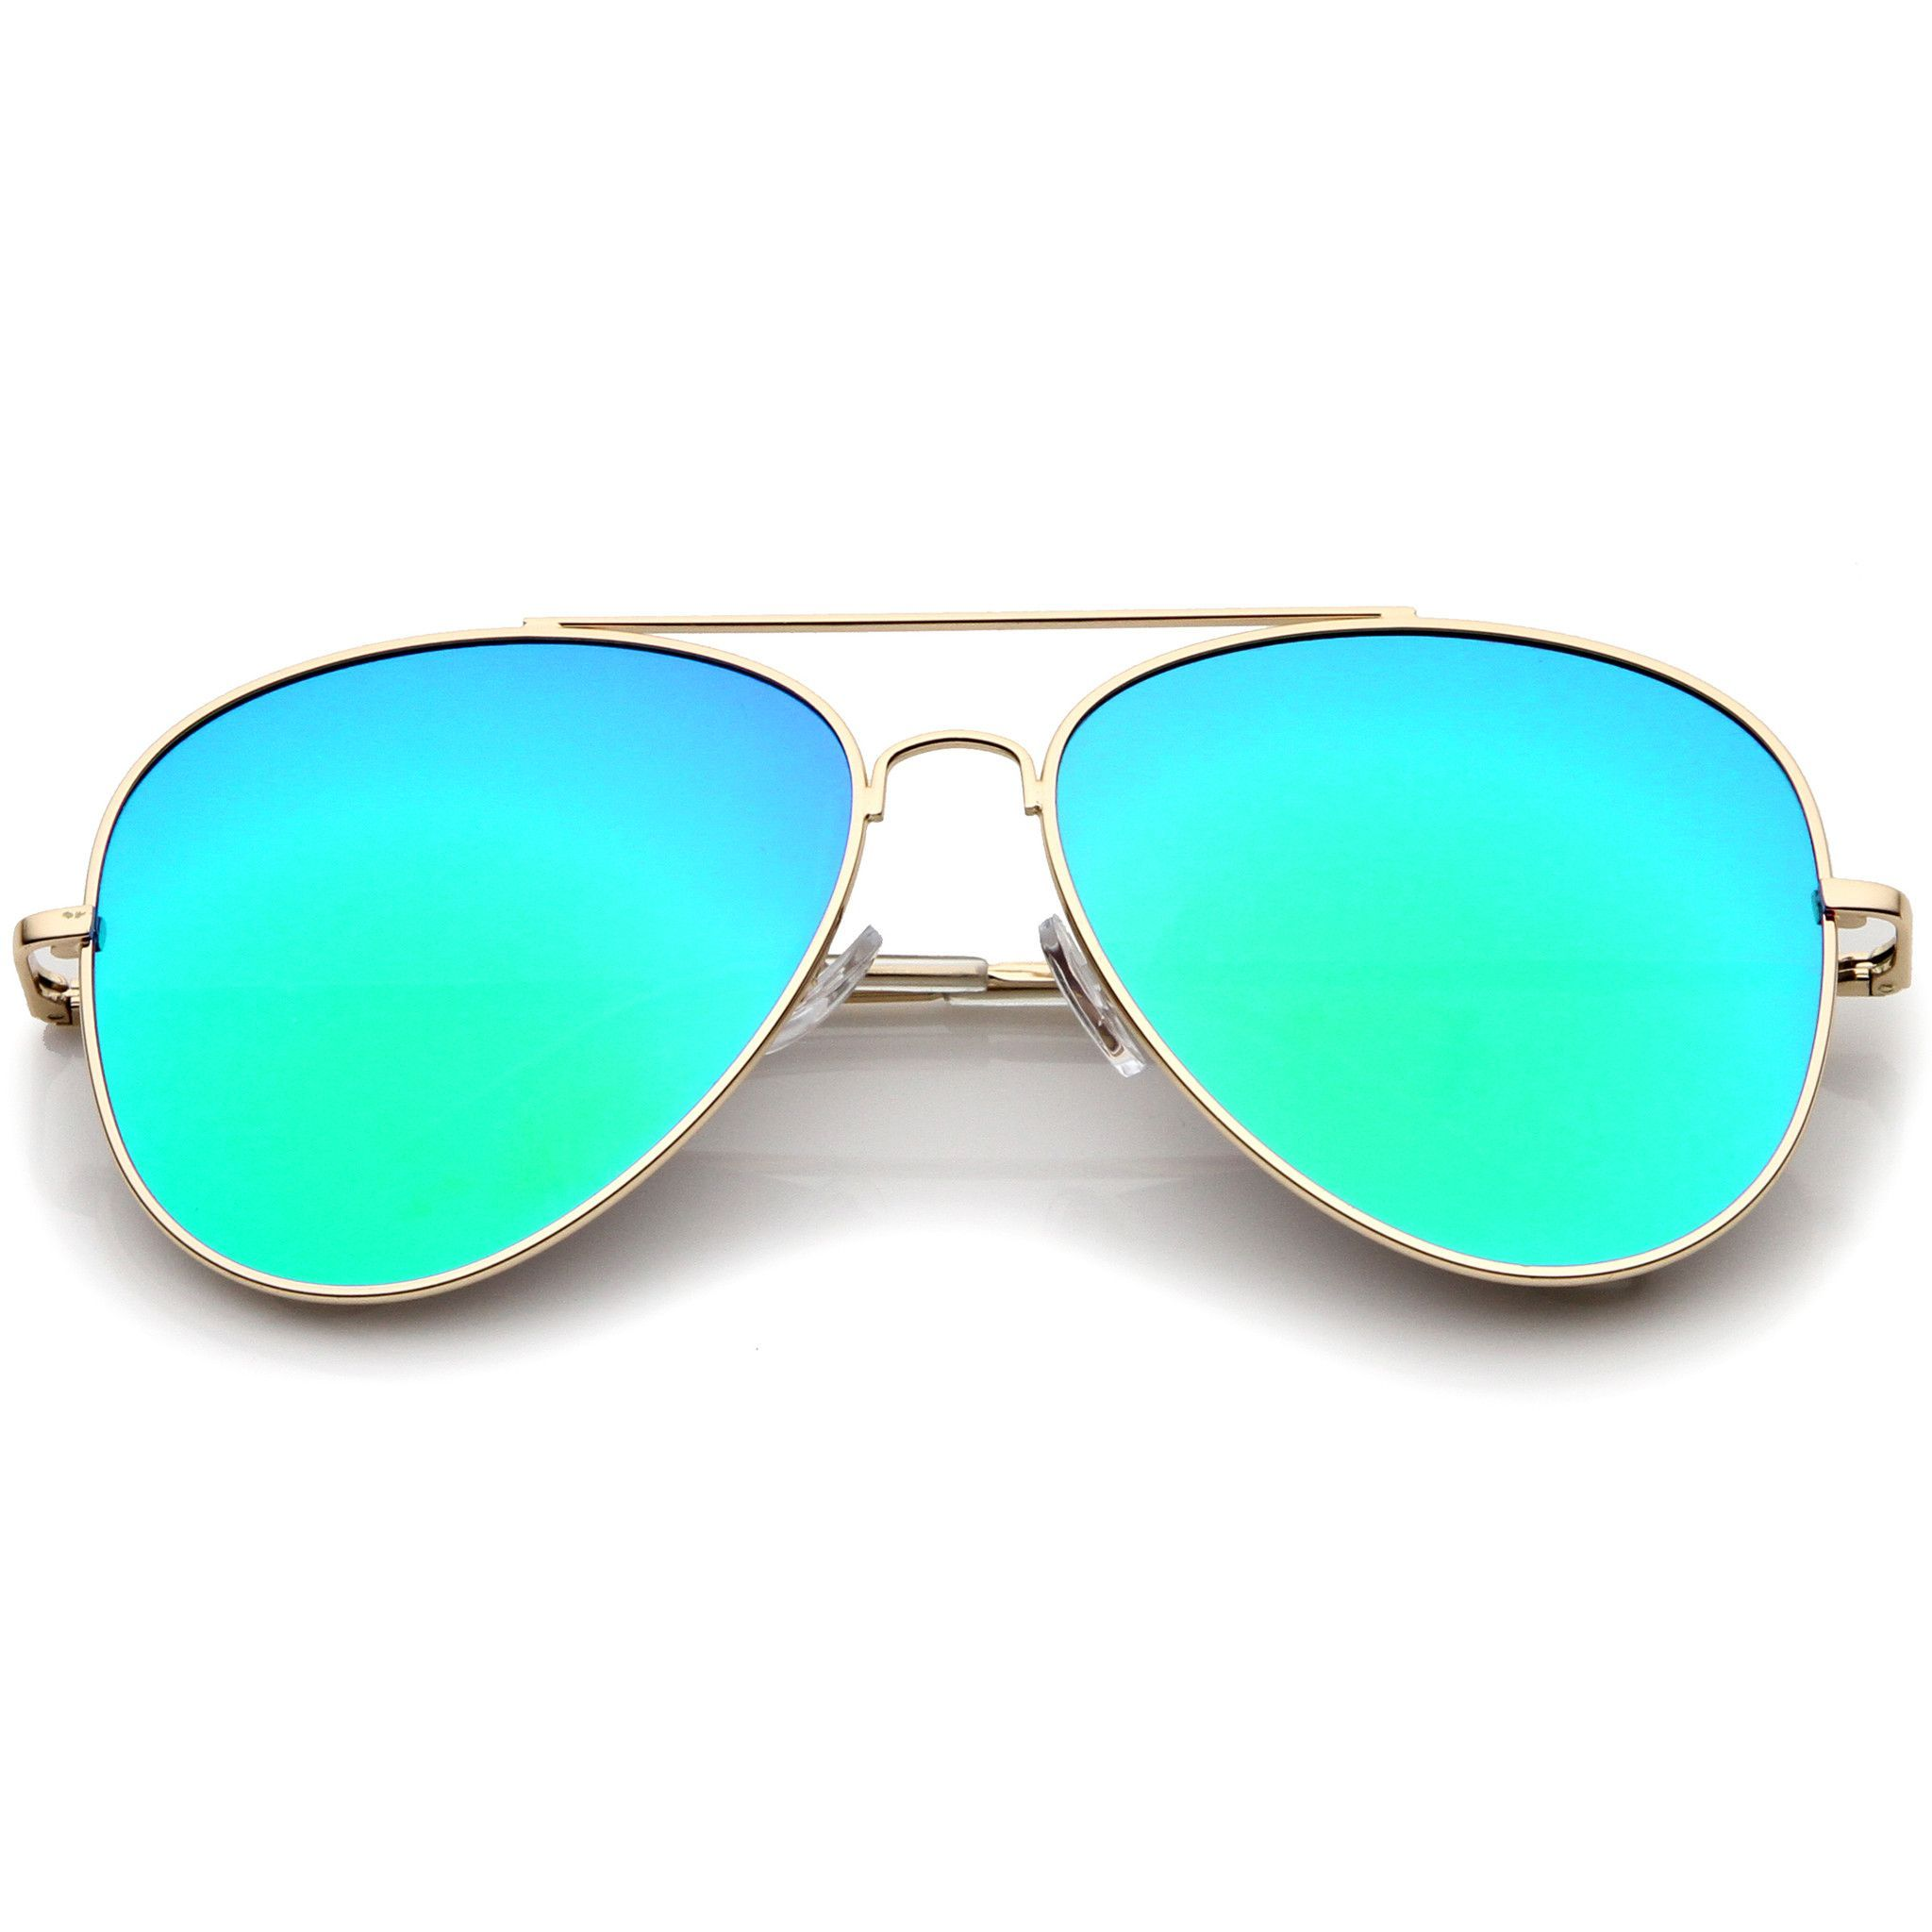 eb72b97043 Large Flat Front Mirrored Lens Aviator Sunglasses A485  https   bellanblue.com Oversized